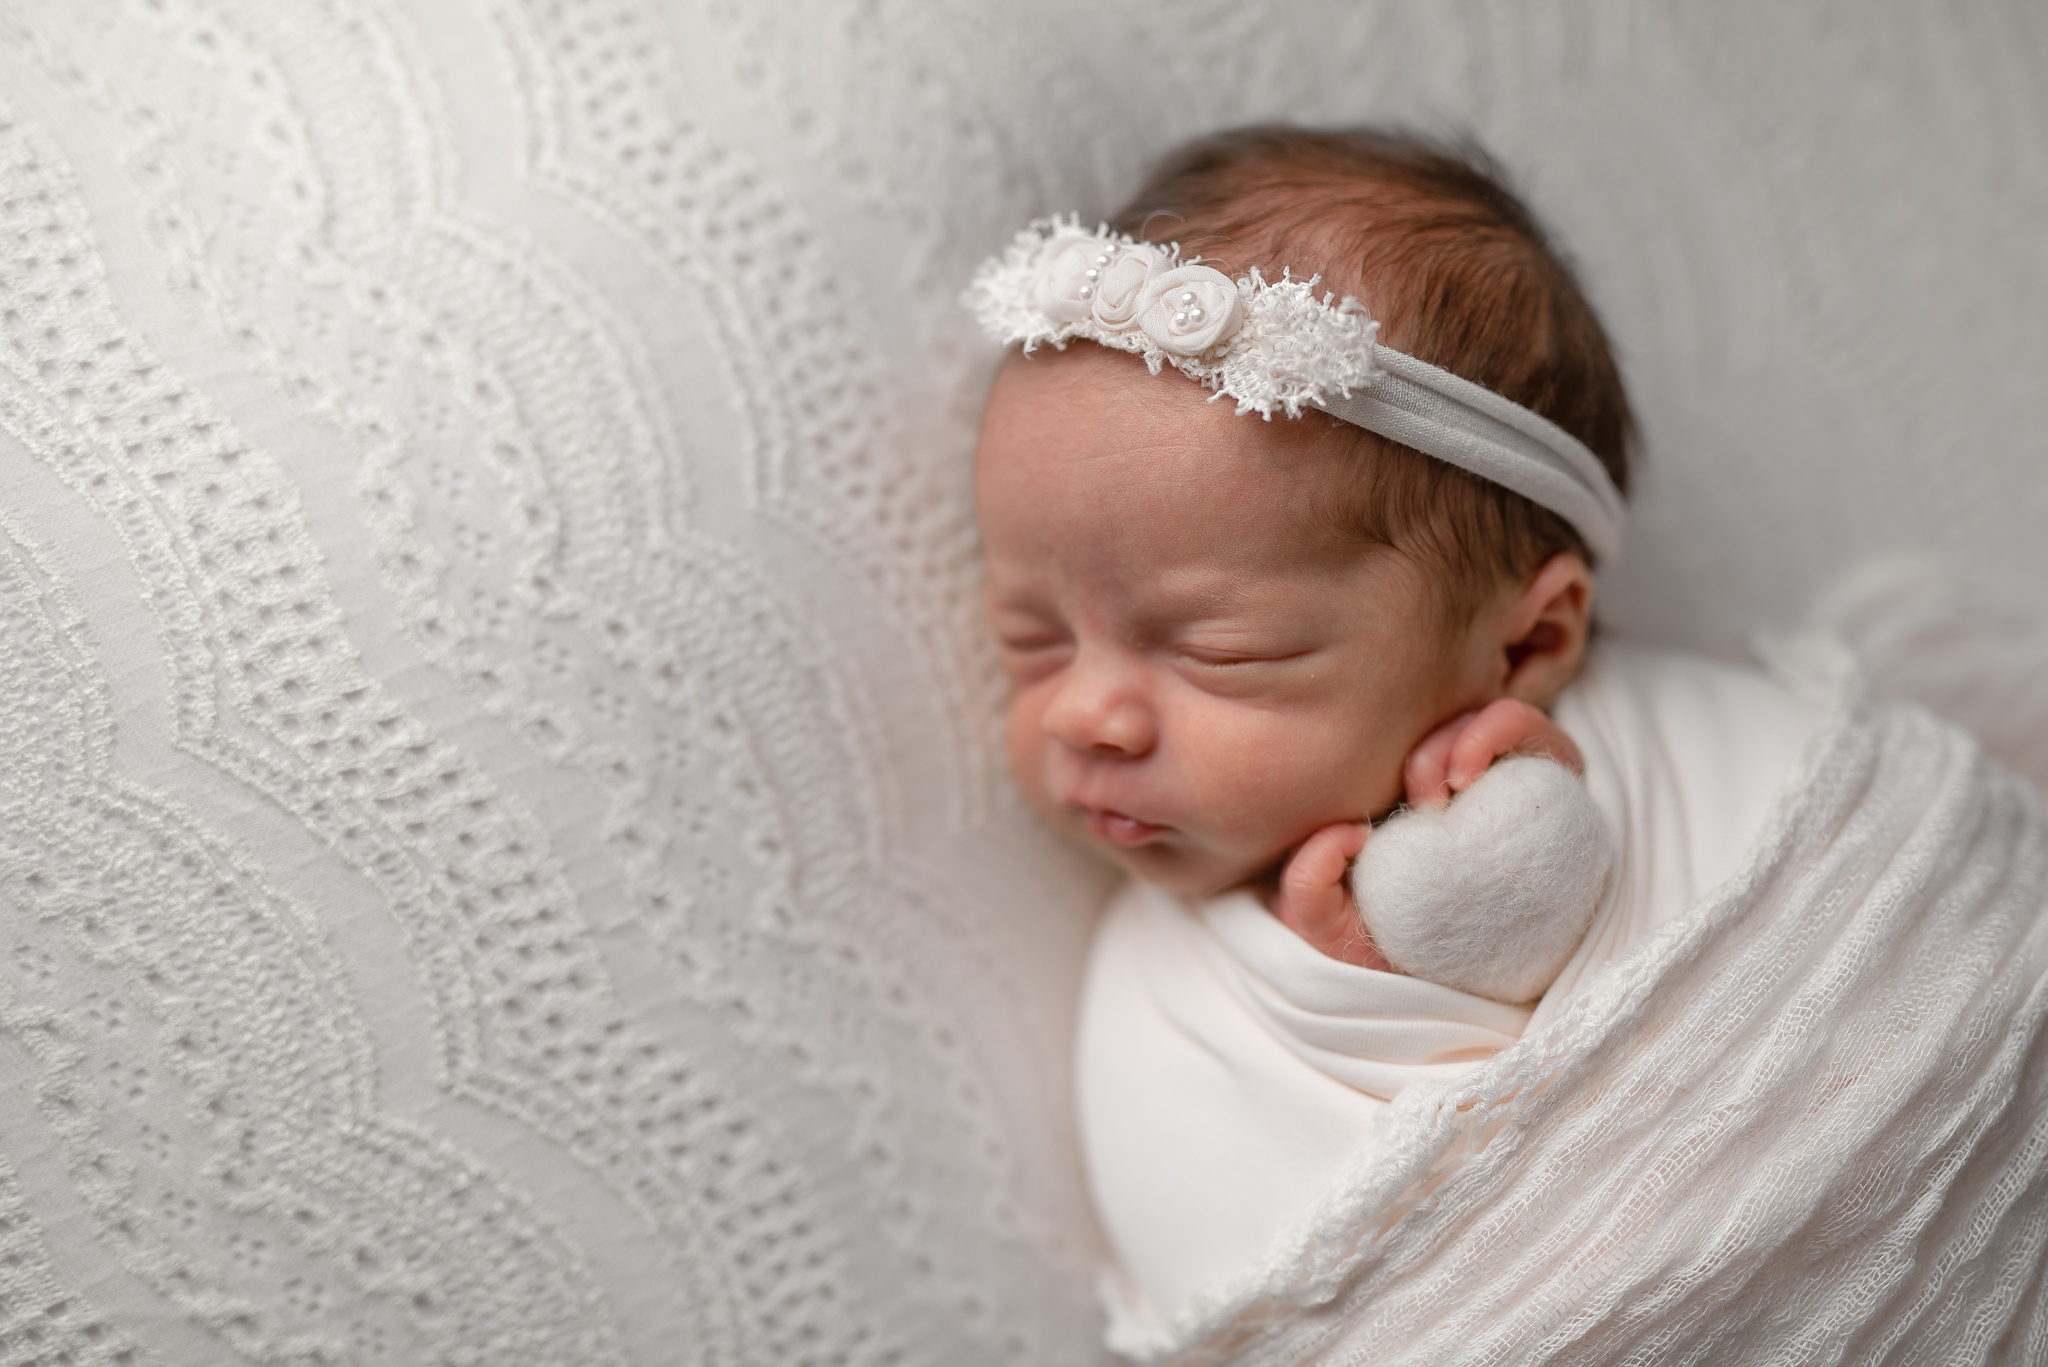 Newborn109NaomiLuciennePhotography032019-Edit.jpg